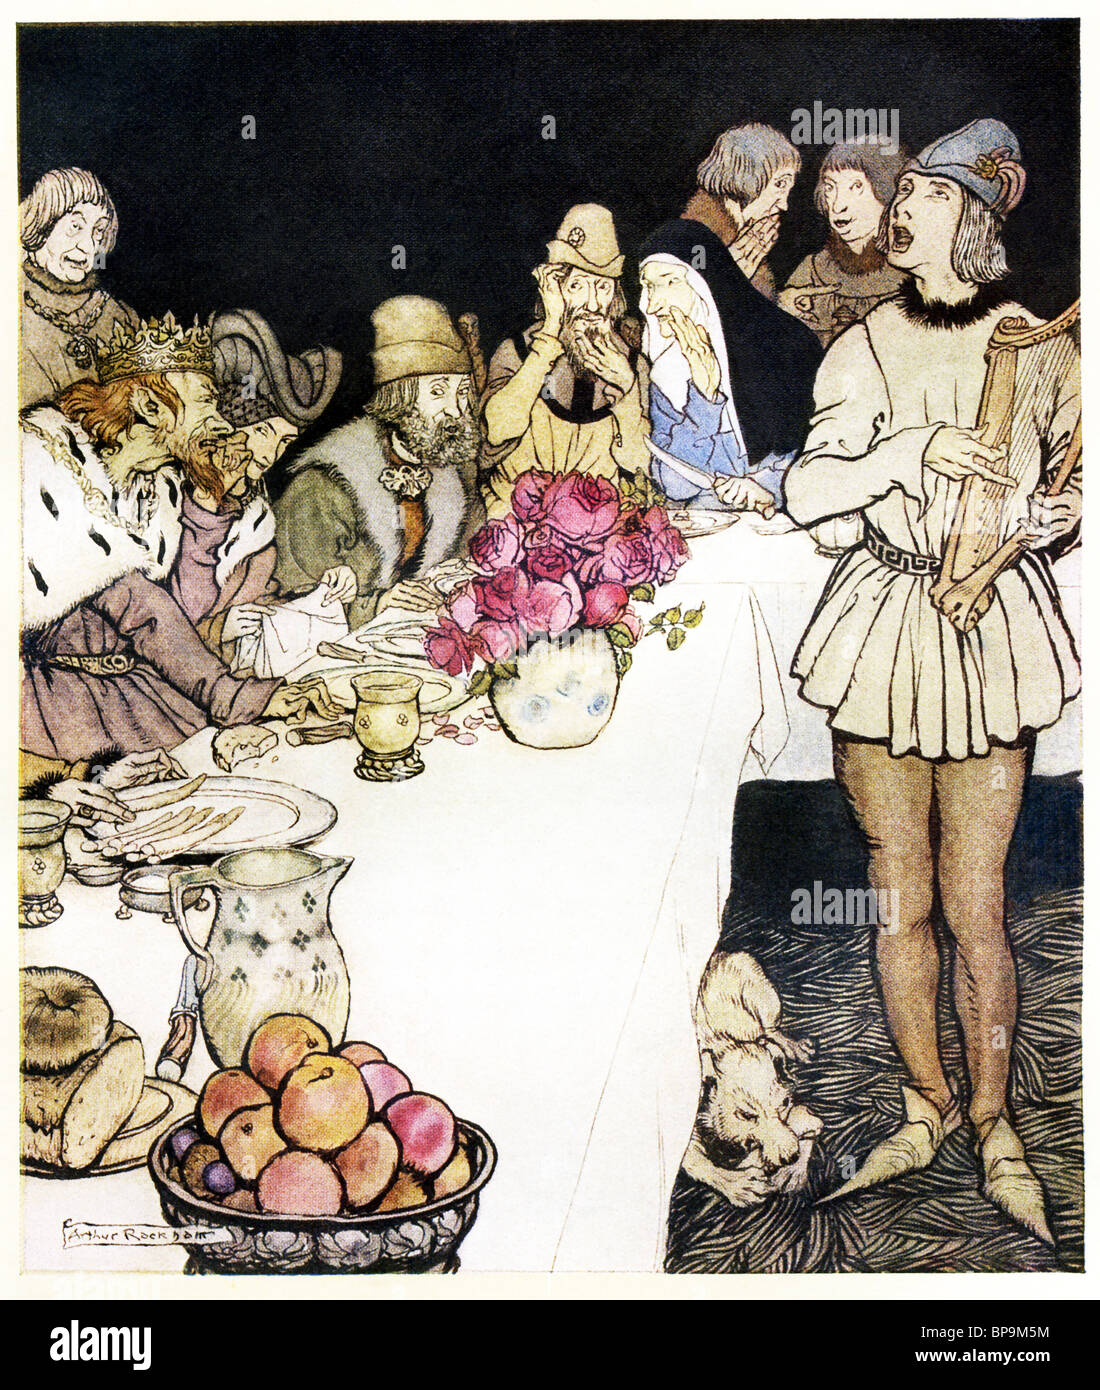 This 1917 illustration by Arthur Rackham shows a great feast that King Mark made and to which Elliot the harper Stock Photo